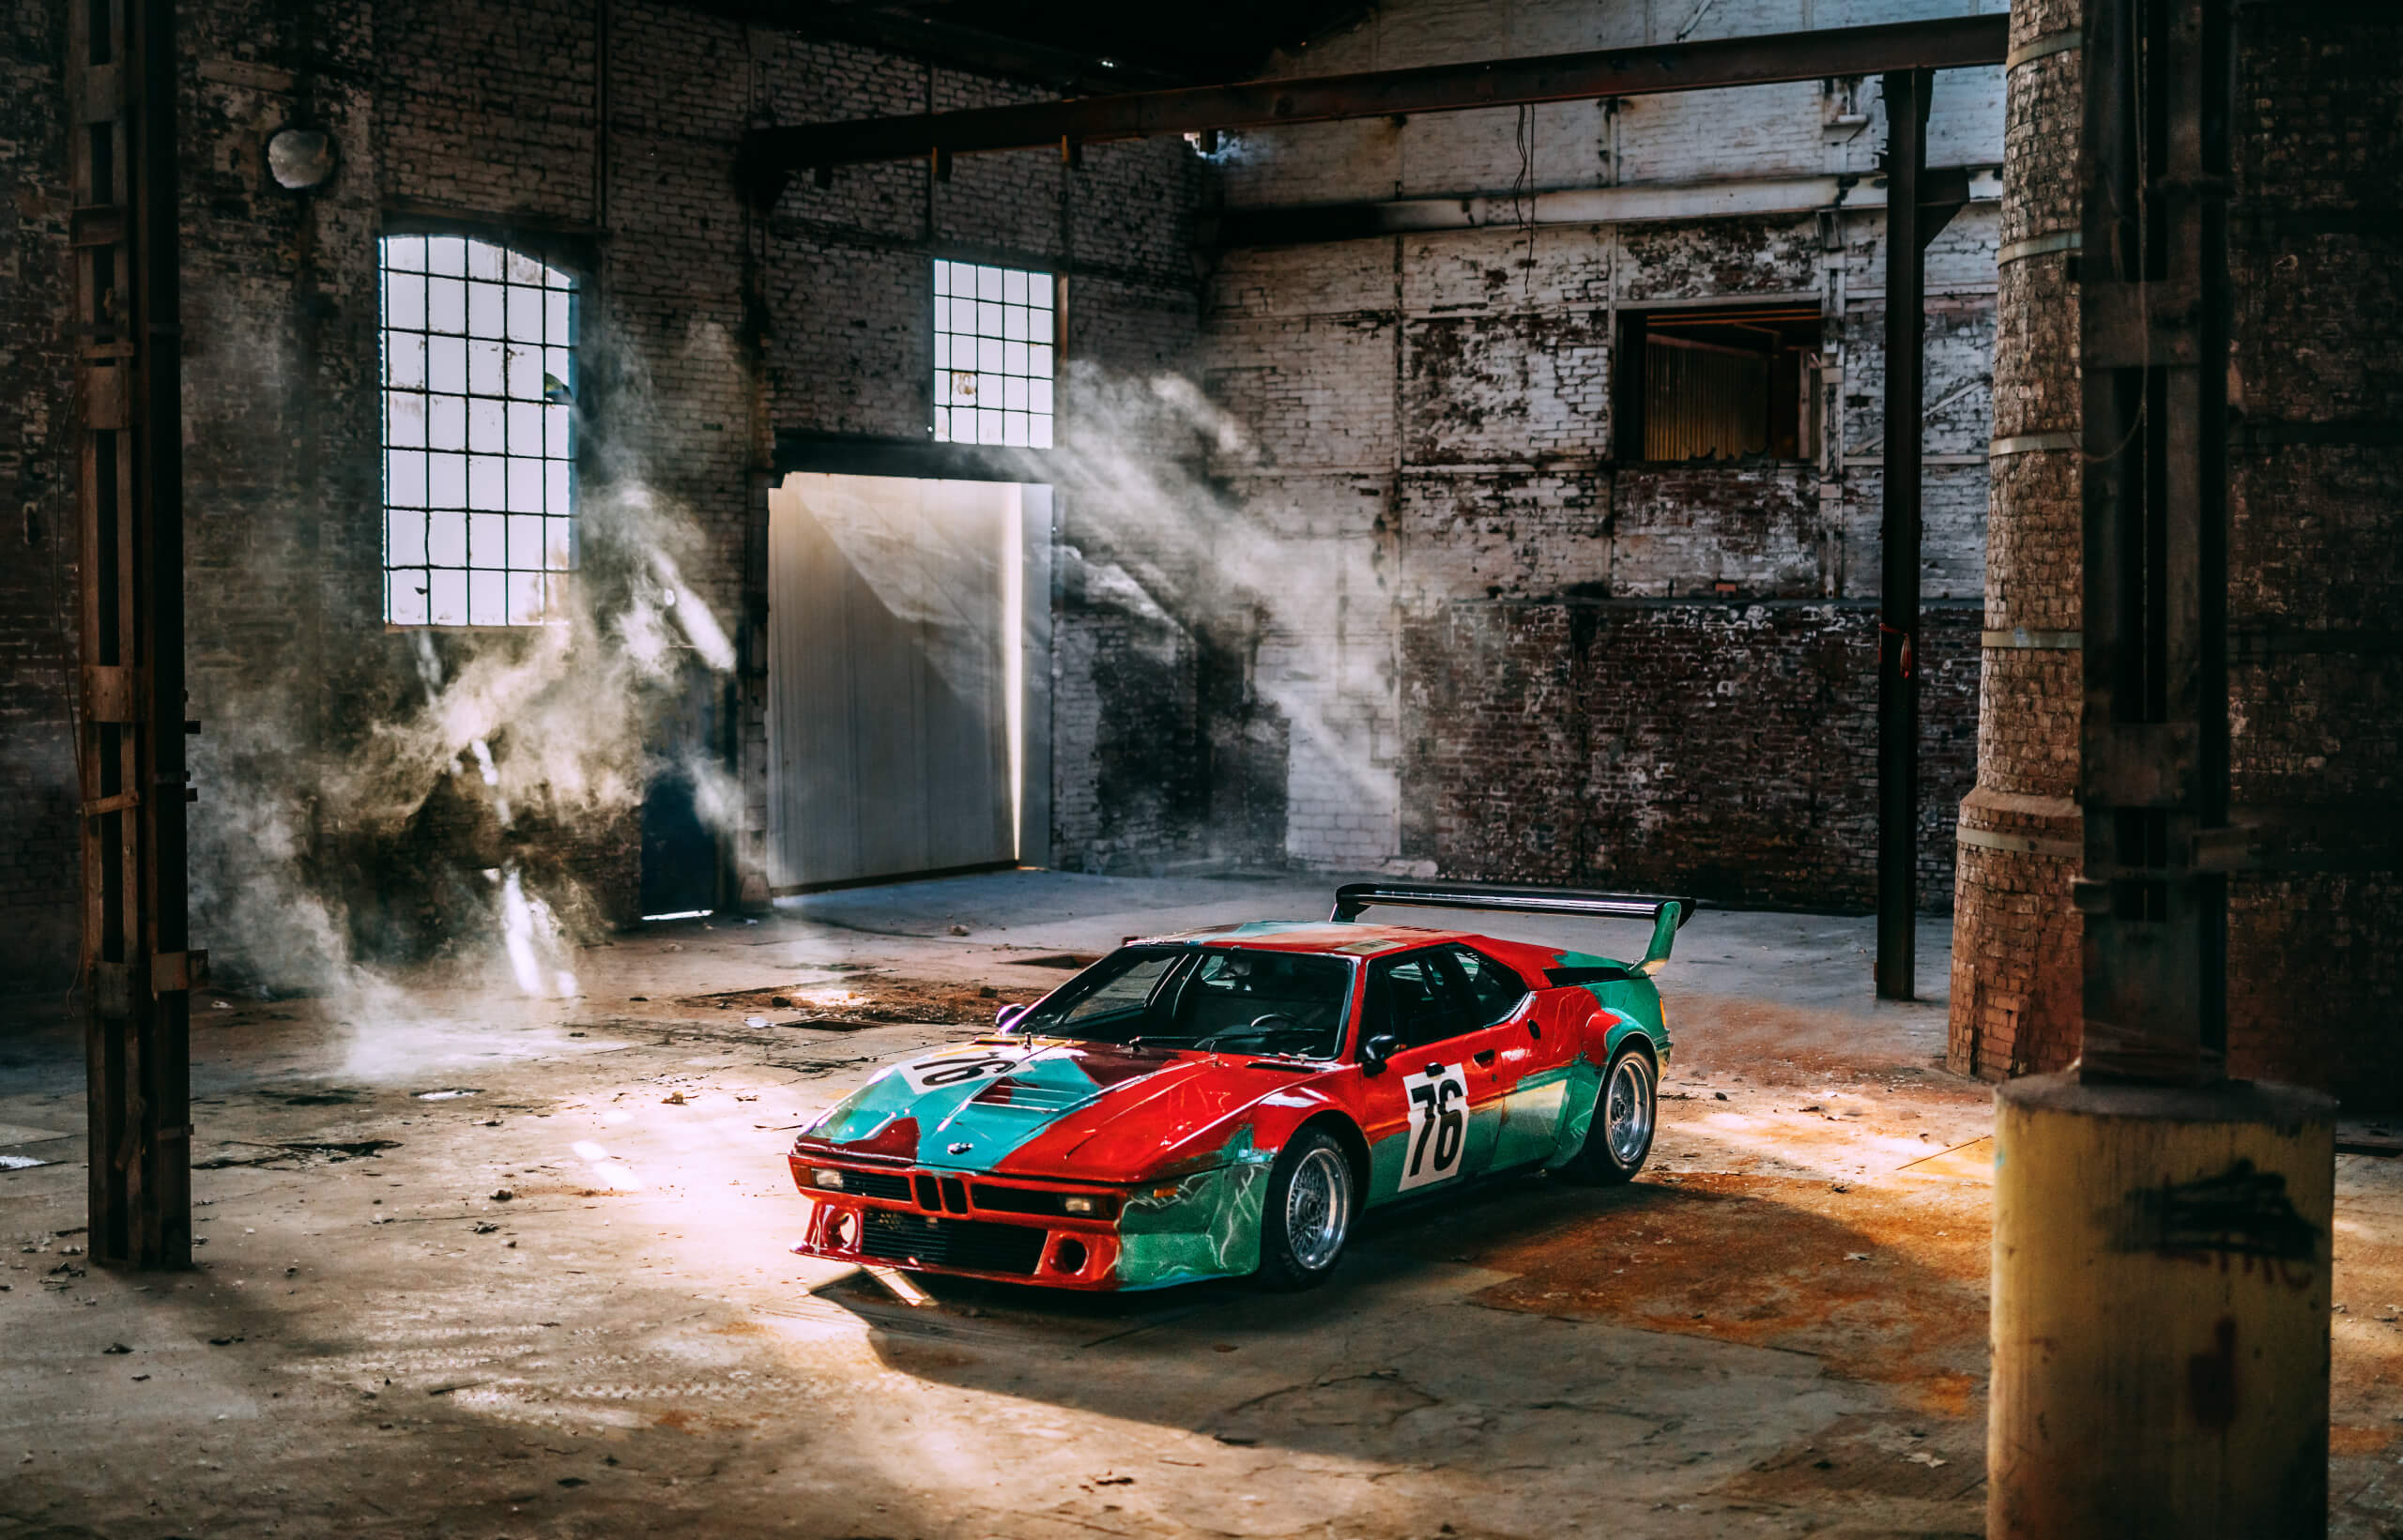 BMW's 1979 Andy Warhol M1 Art Car will be shown at the 2020 India Art Fair.